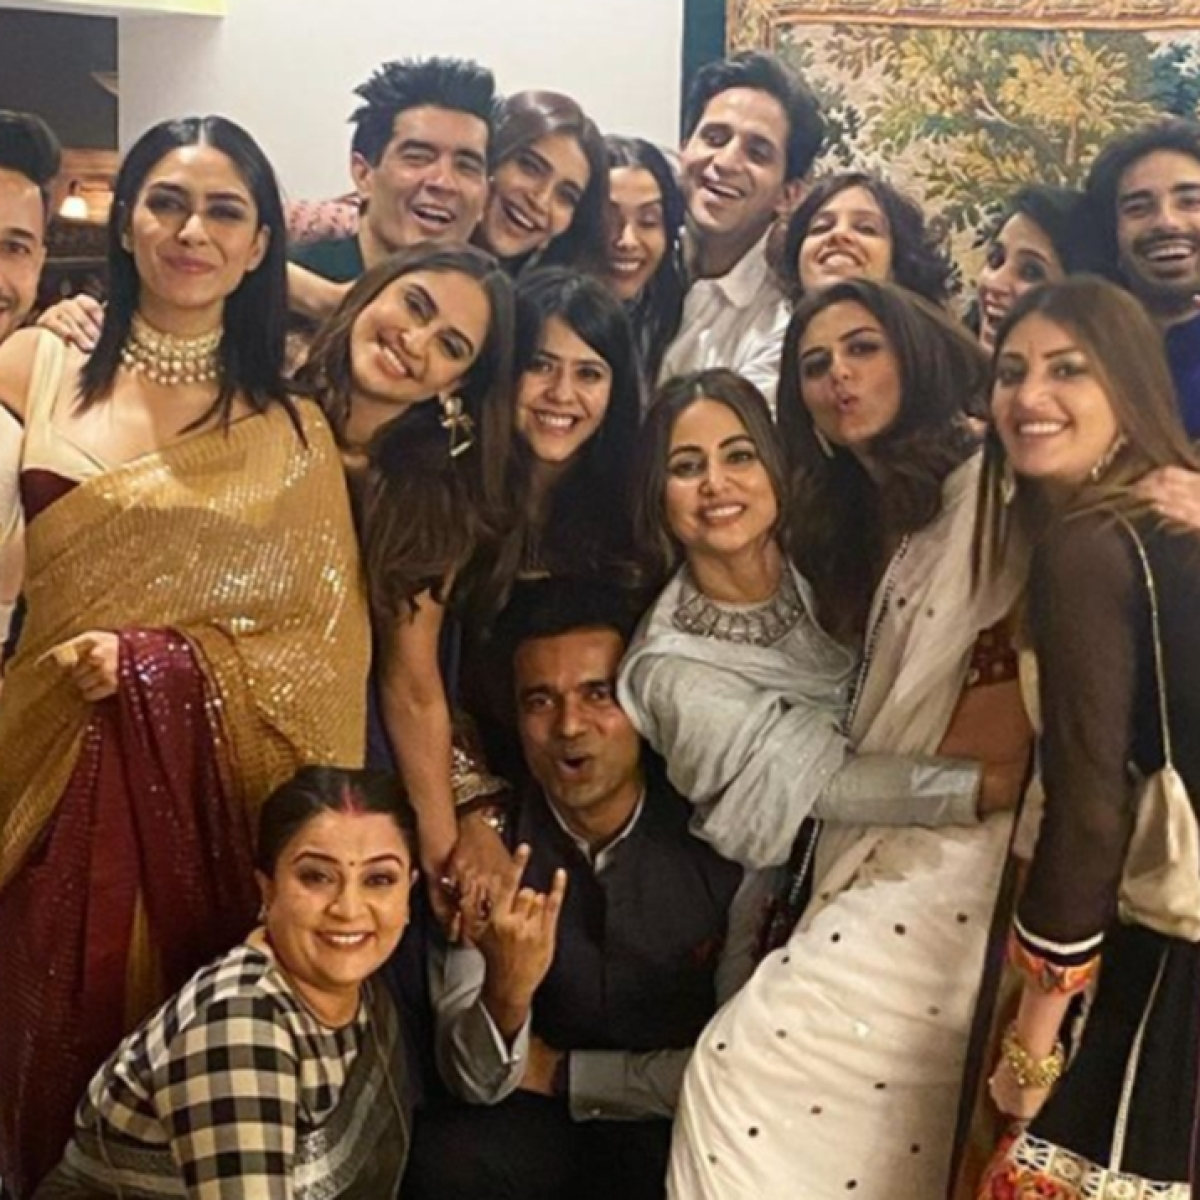 Inside Pics: Hina Khan shares festive stills from Ekta Kapoor's Diwali bash